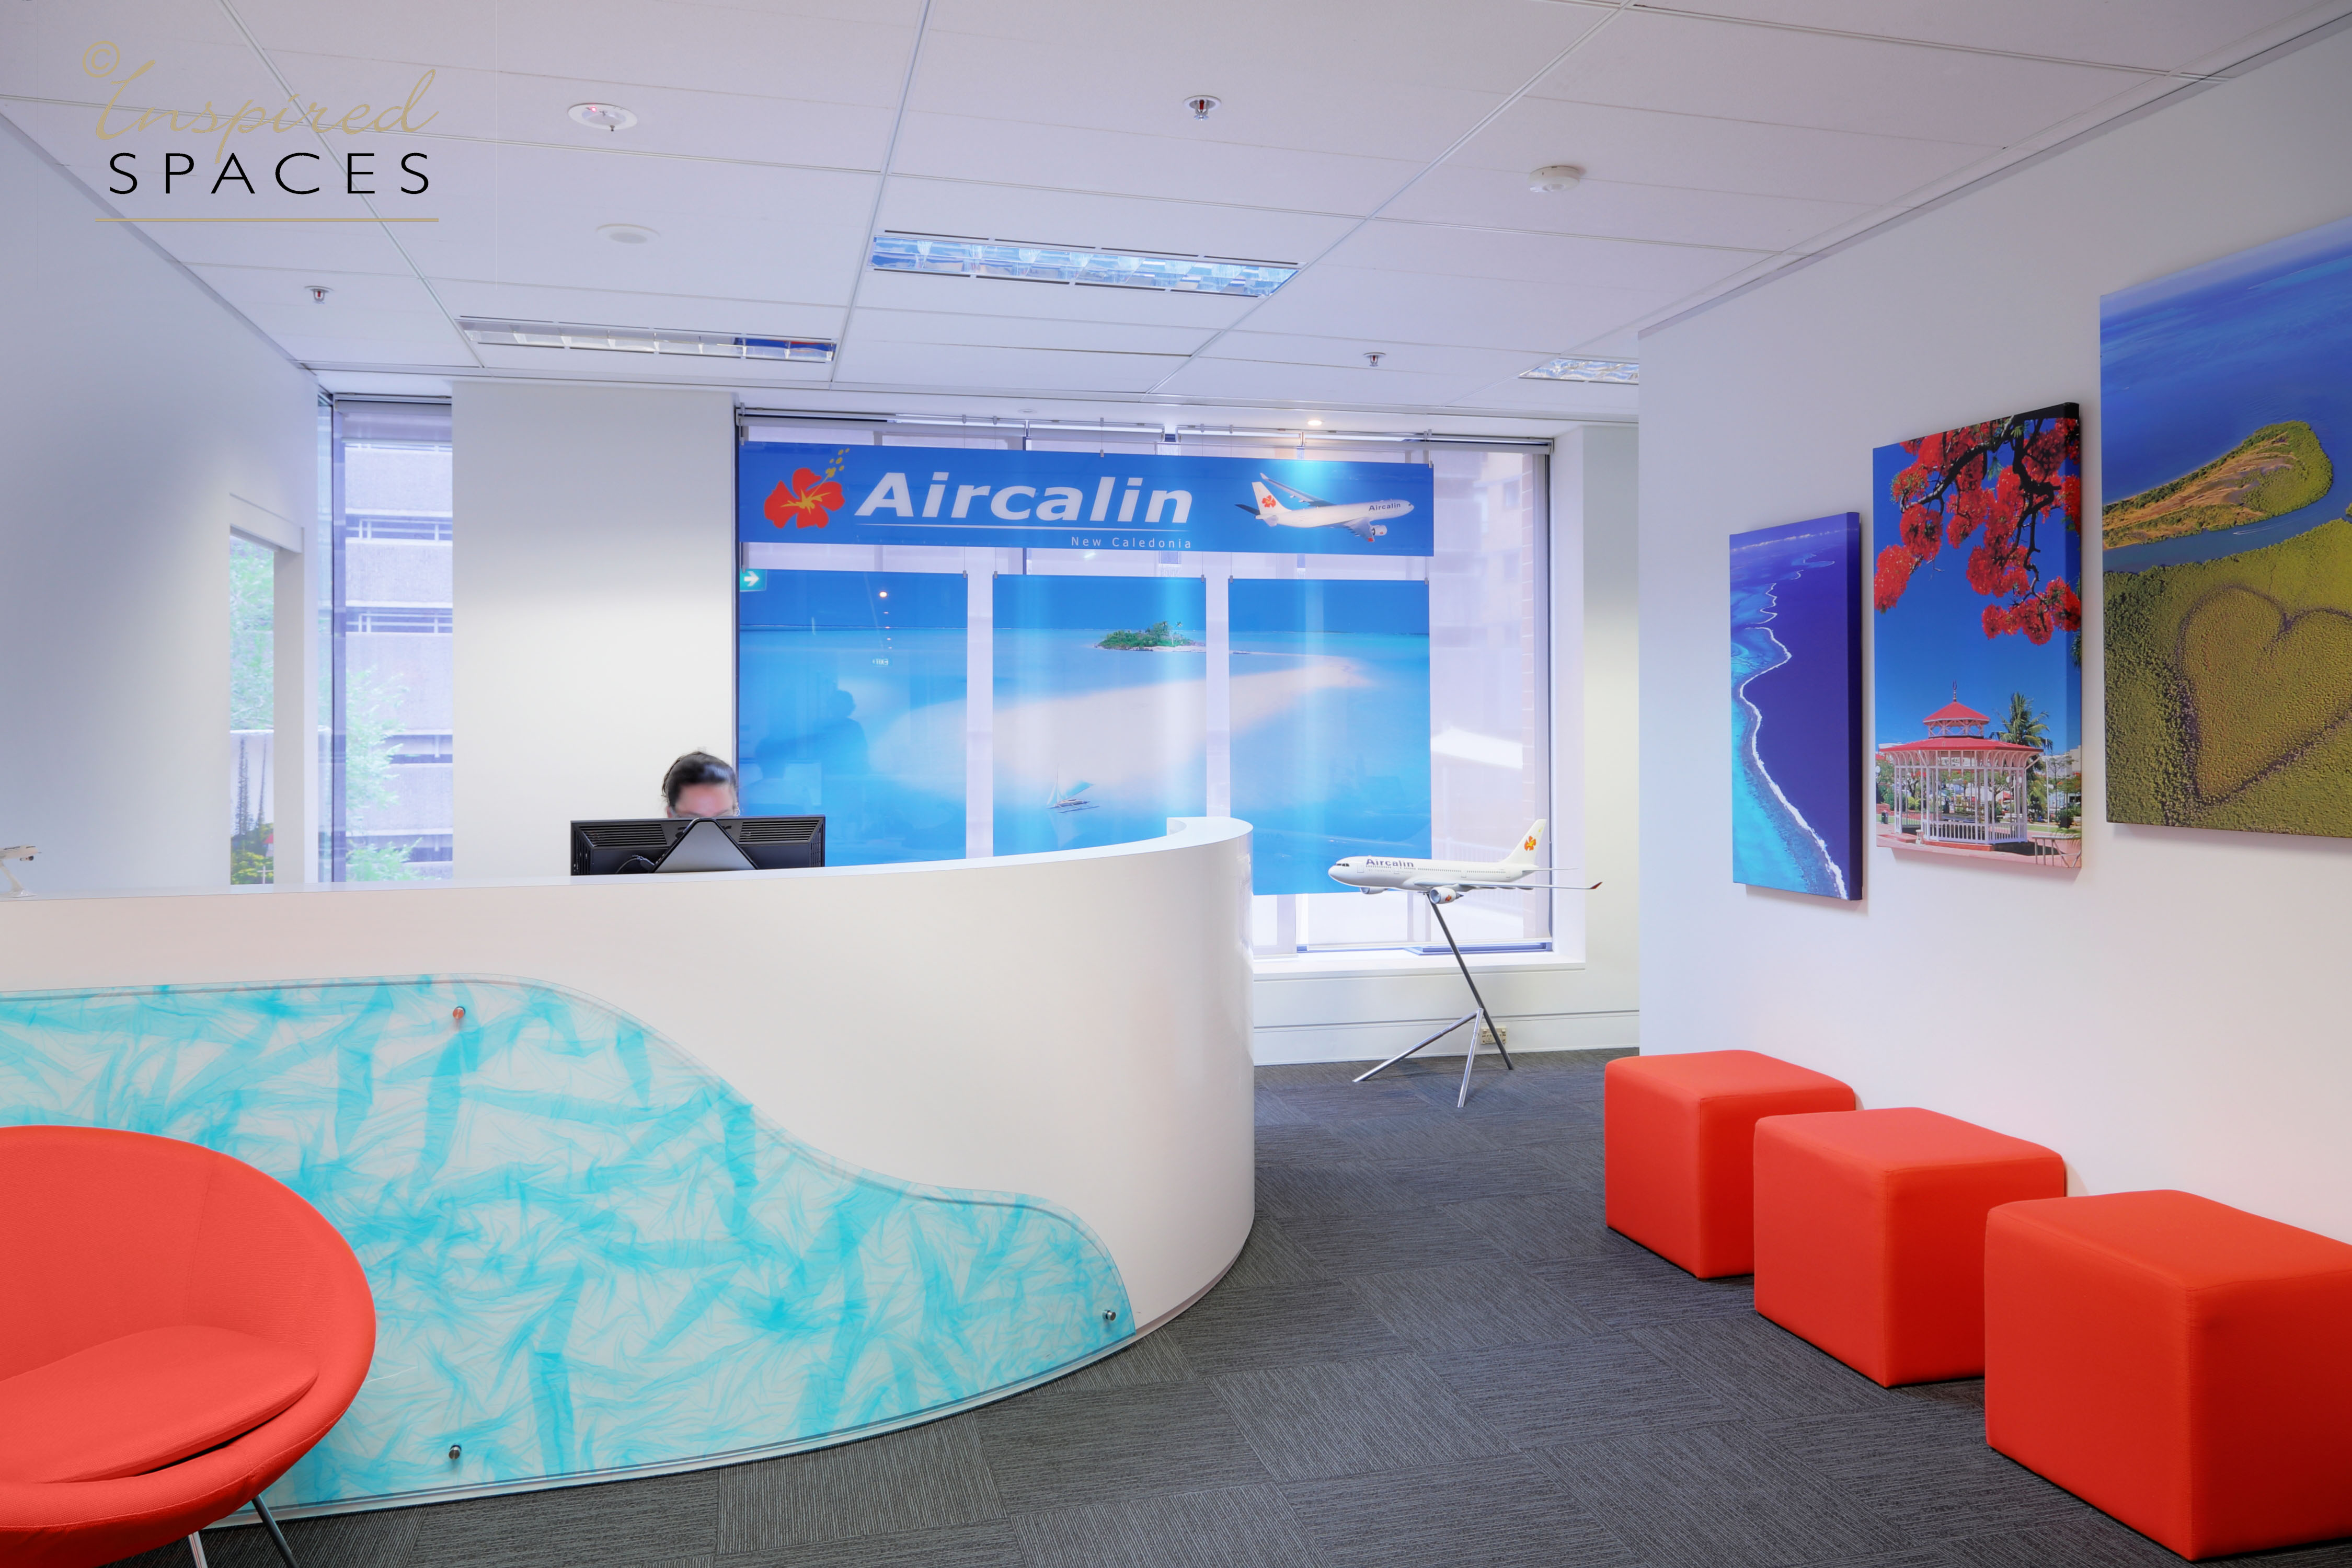 Office design sydney Niche Commercialofficeaircalinsydneyjpg Yellowtrace Aircalin Office Design Makeover Inspired Spaces Commercial And